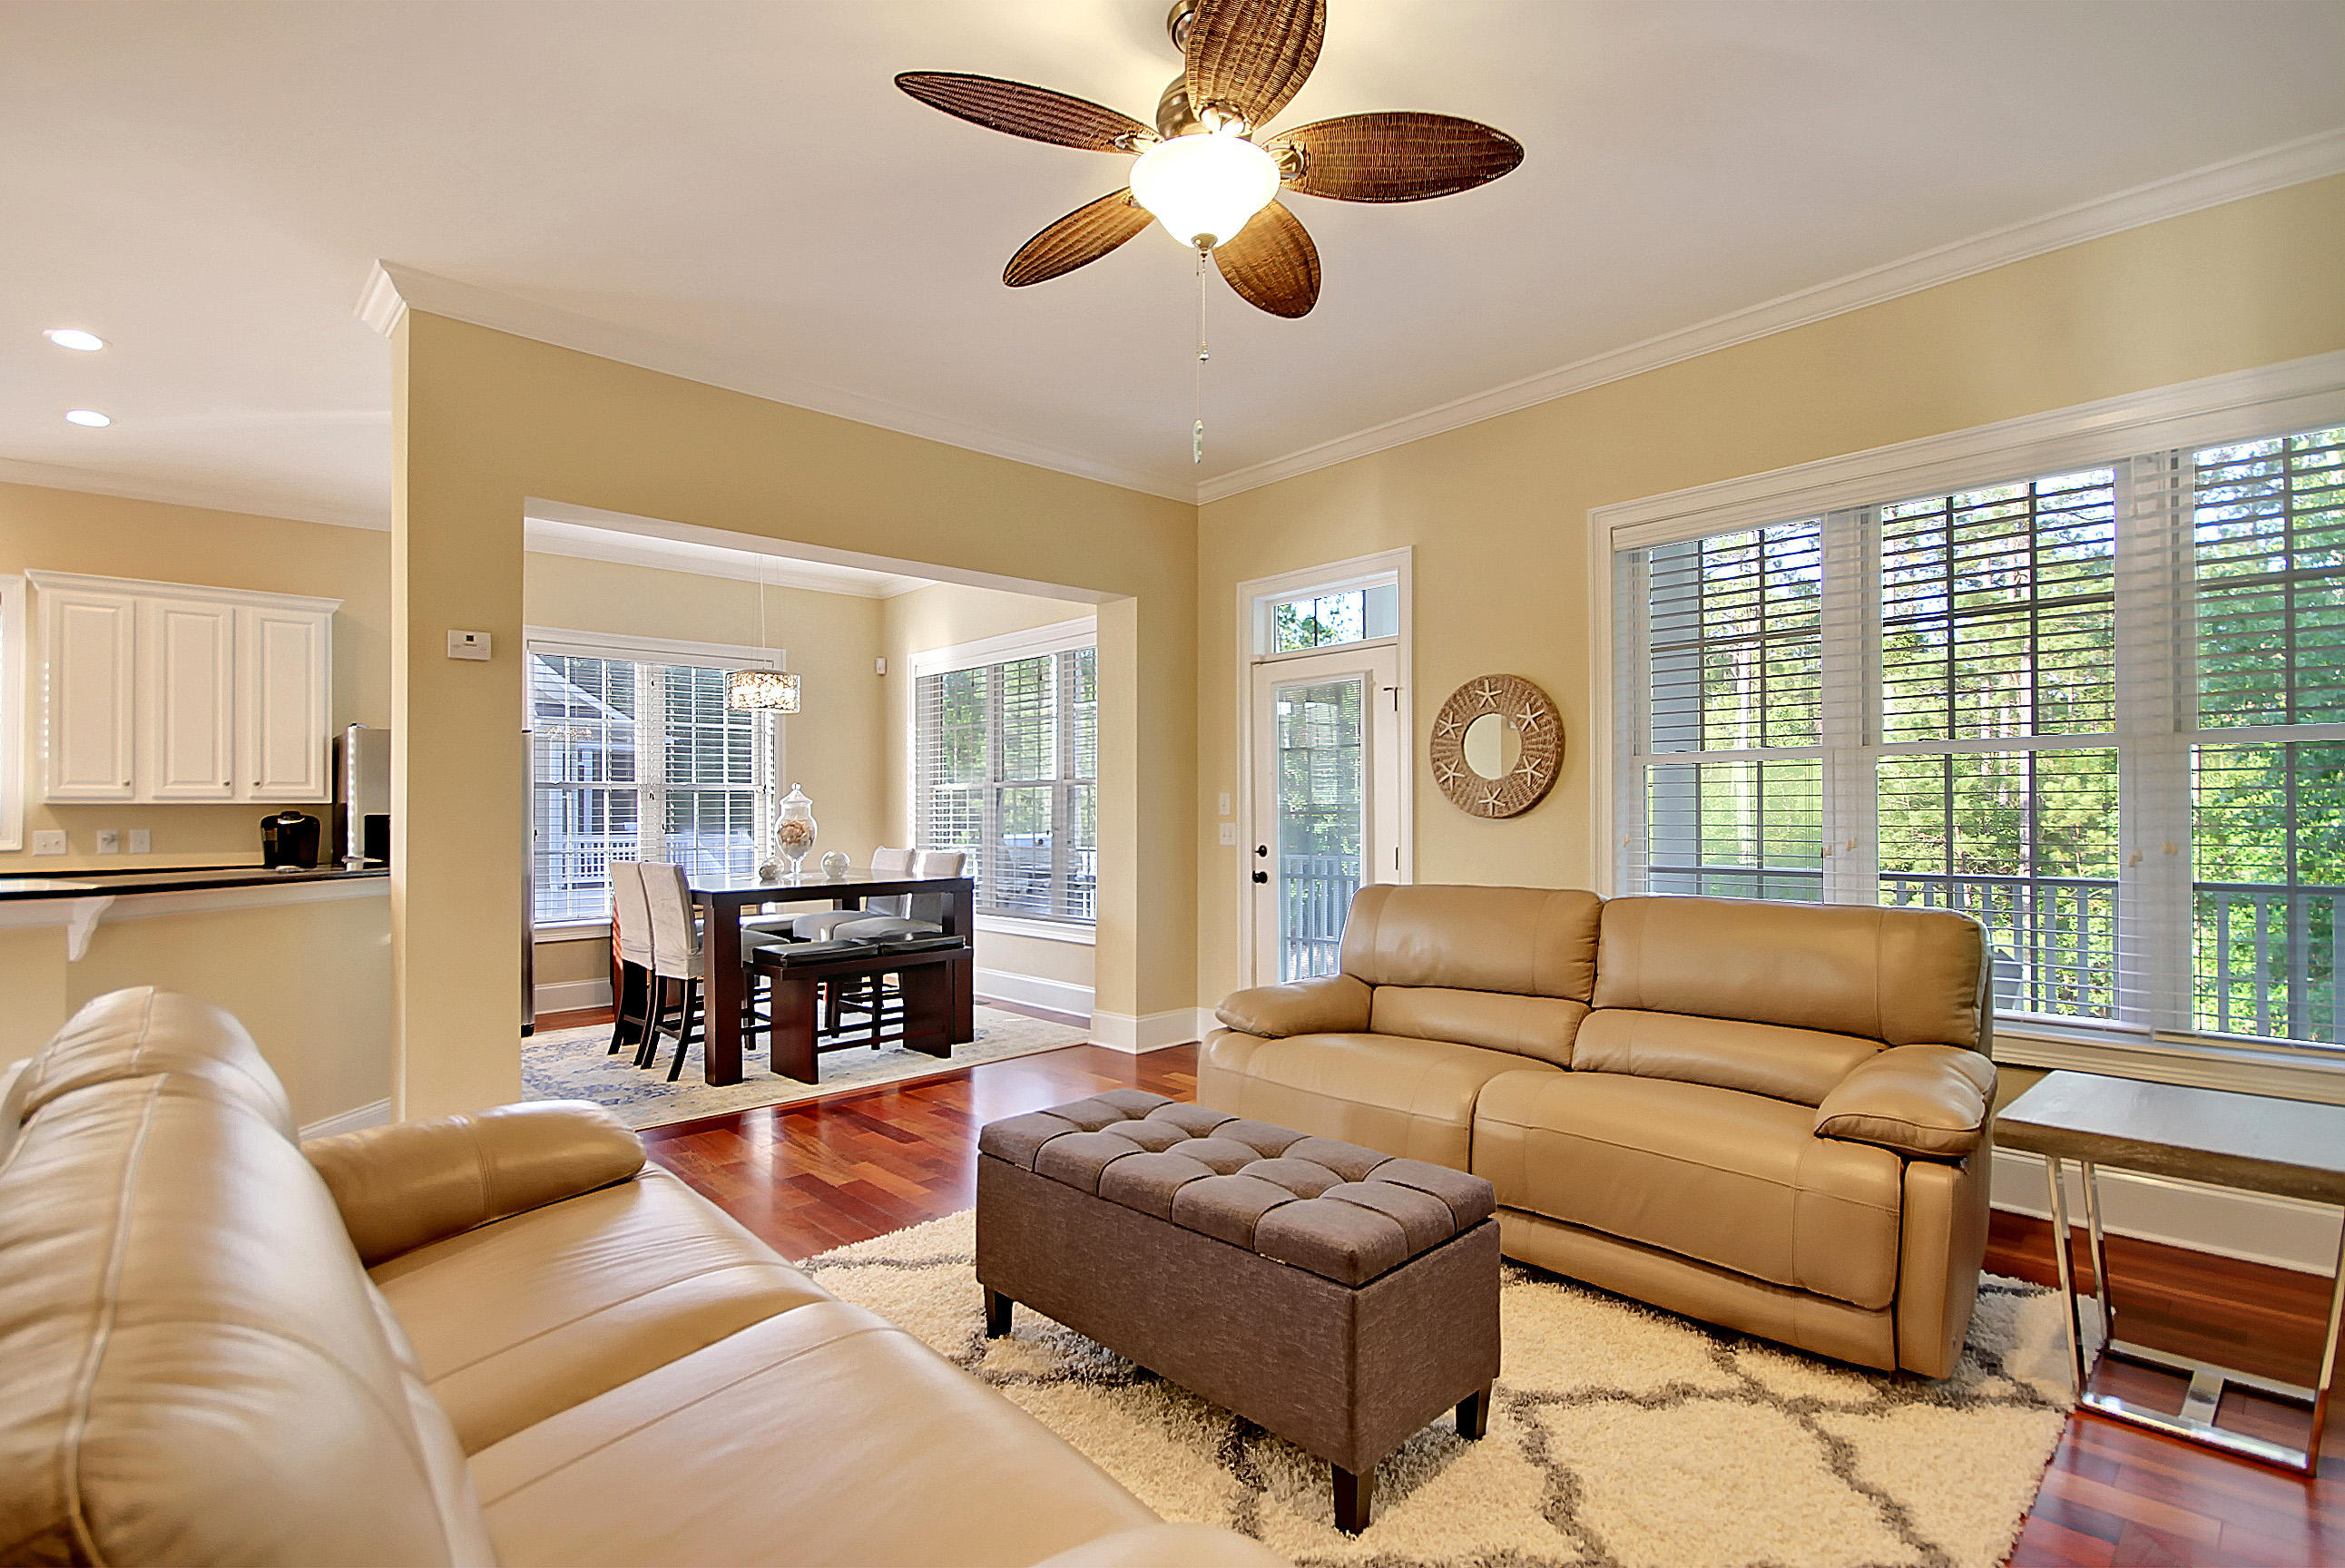 Rivertowne Country Club Homes For Sale - 2200 Branch Creek, Mount Pleasant, SC - 48